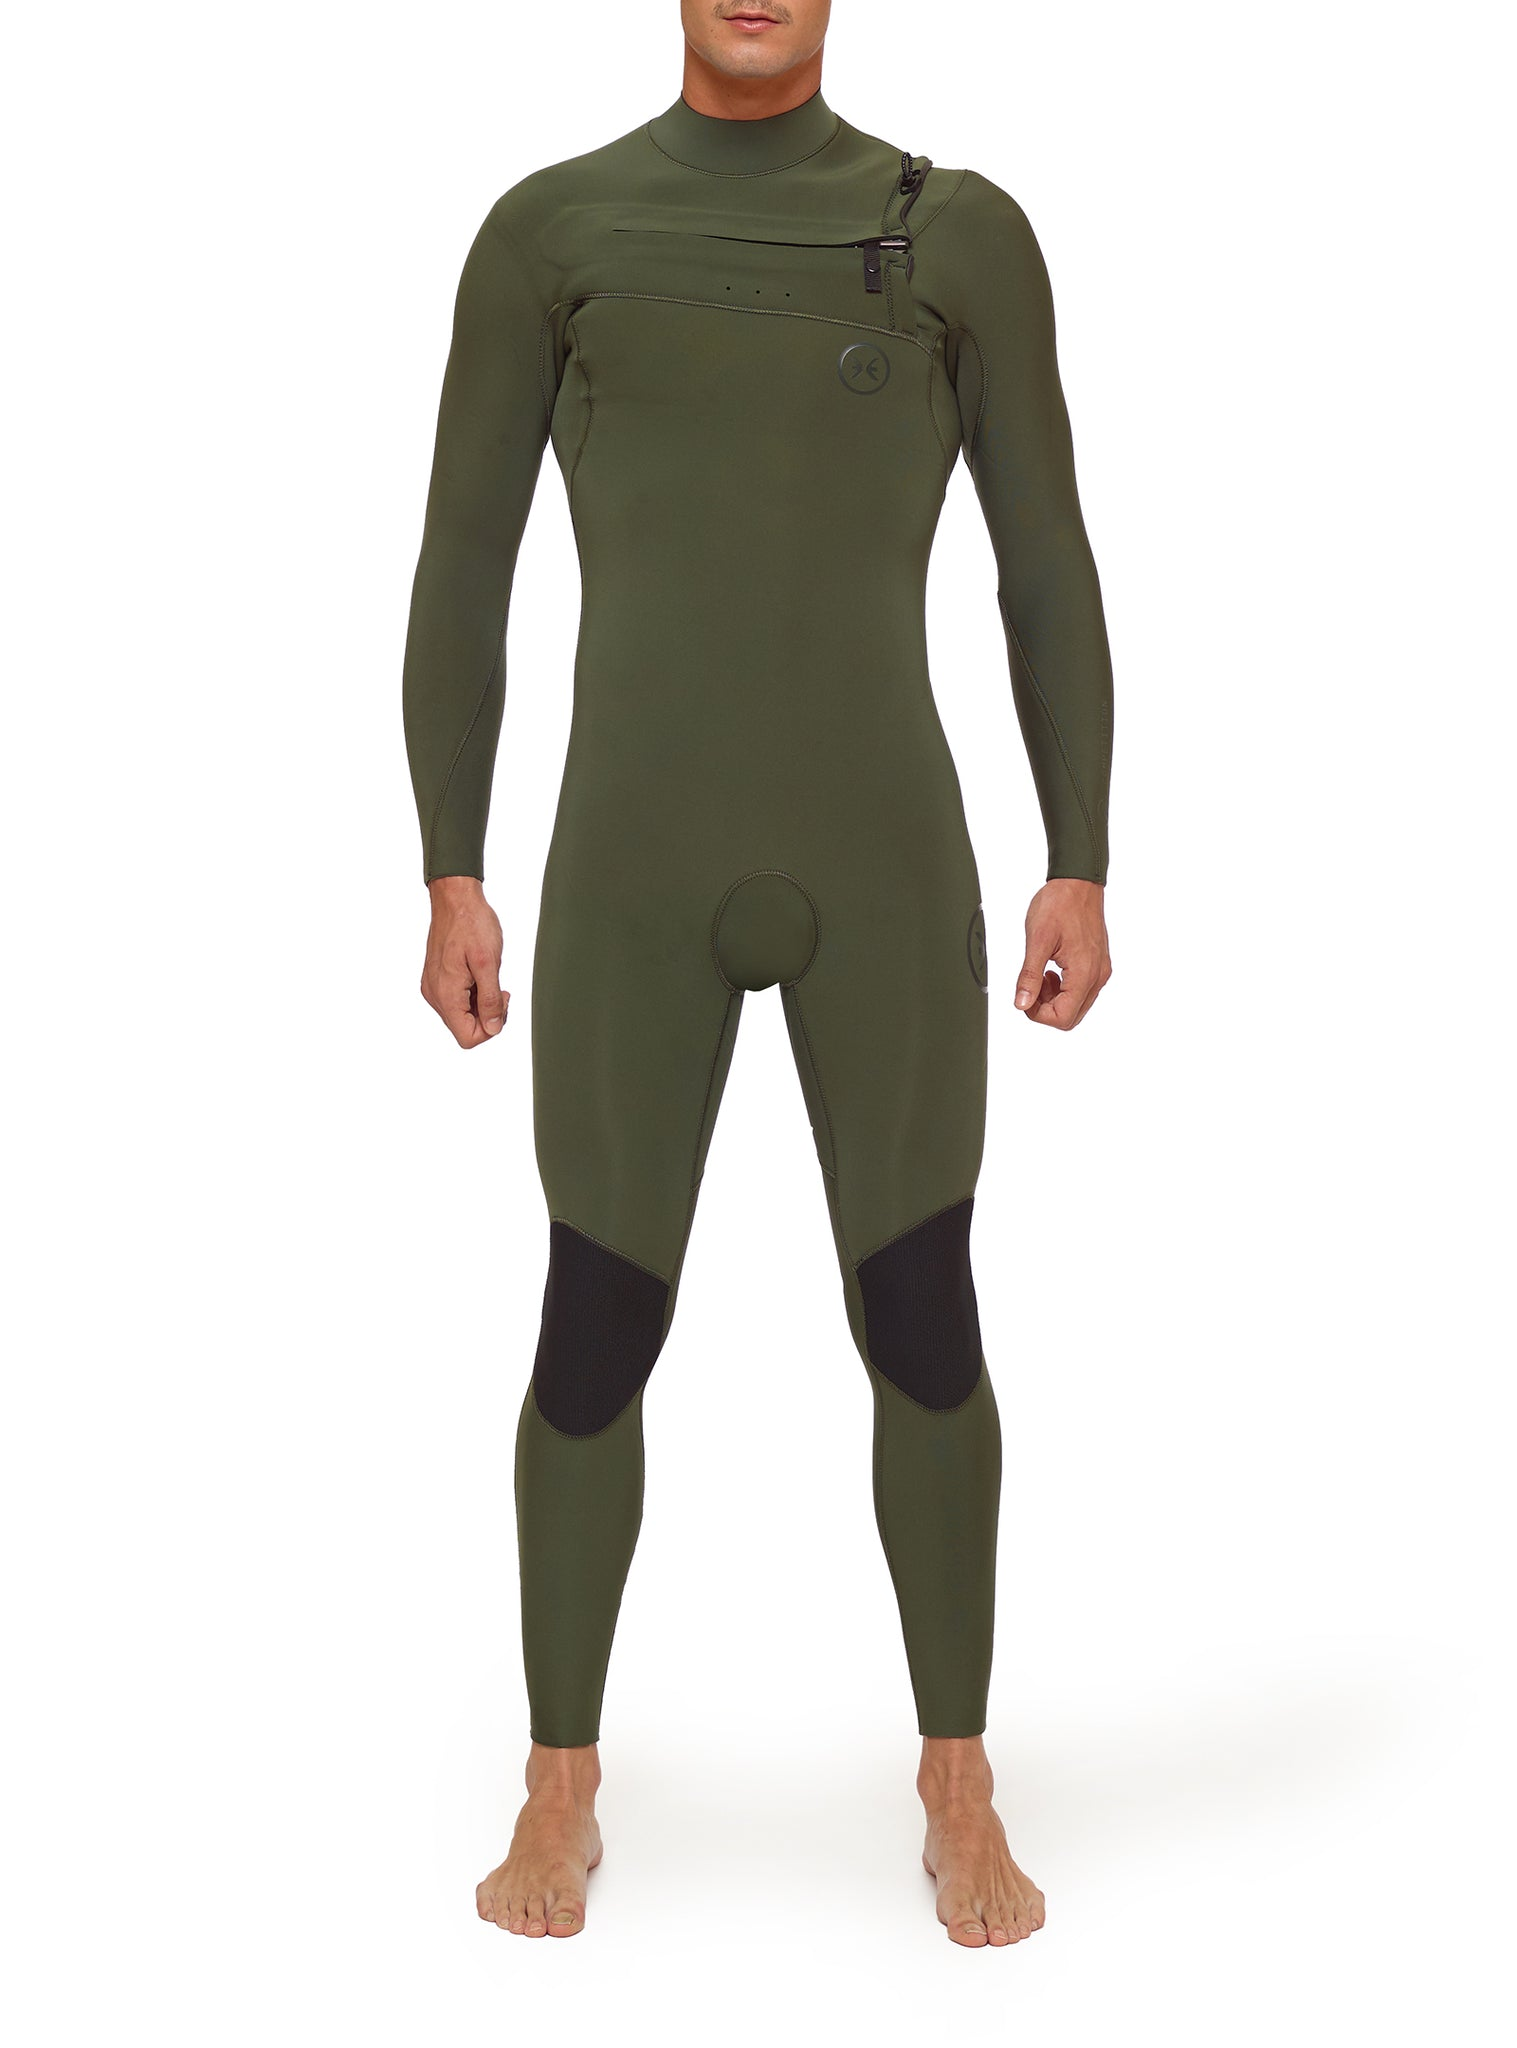 Wetsuit Man Competition 4/3 Chest Zip Green